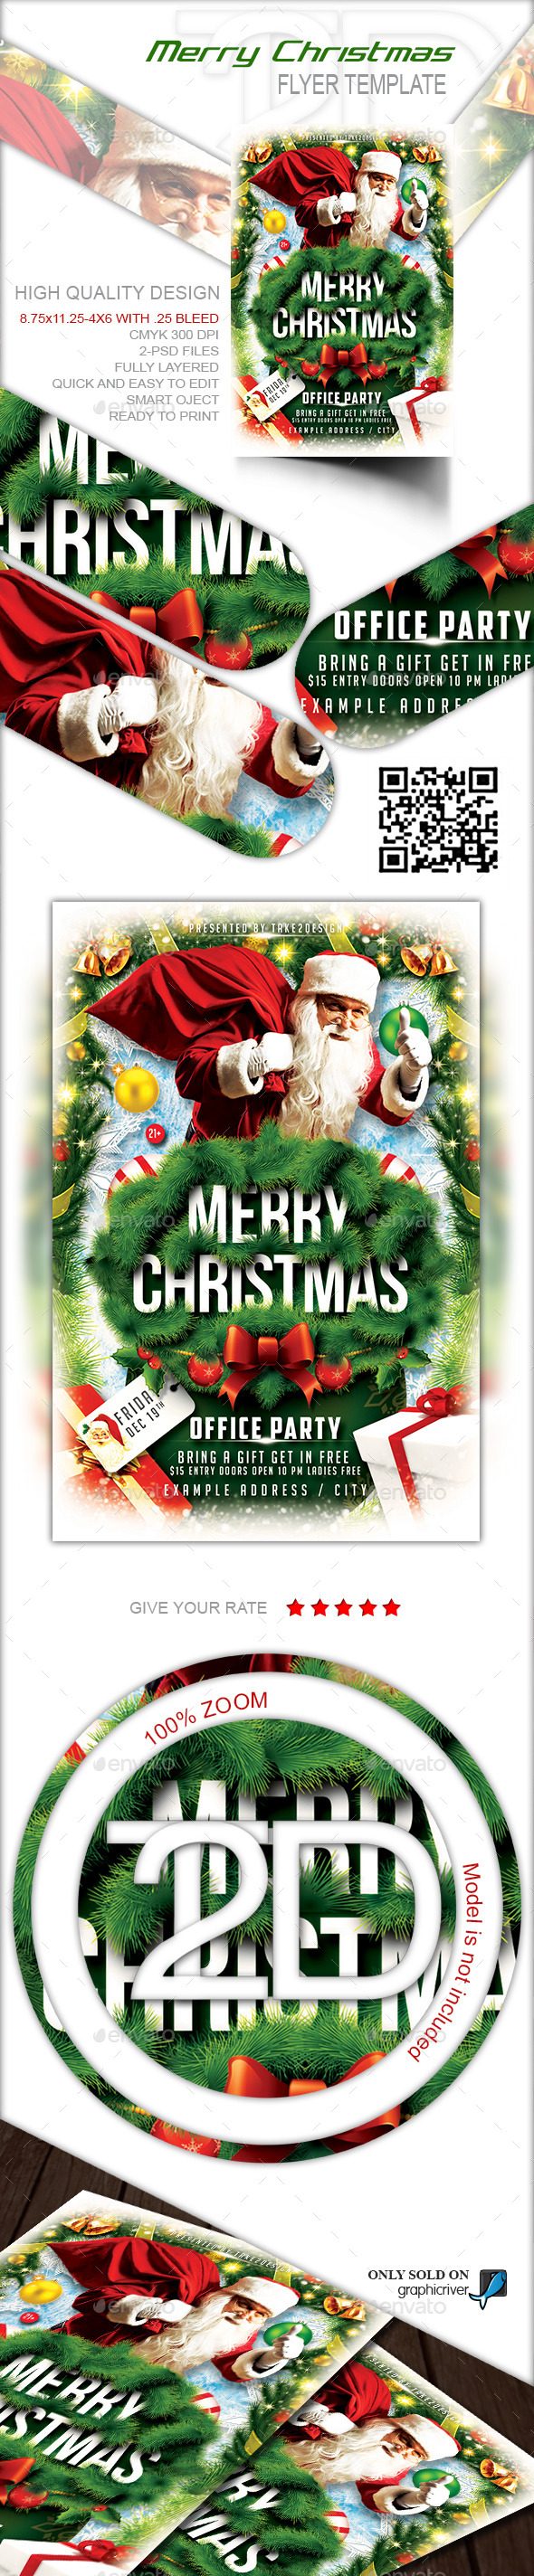 GraphicRiver Christmas Party-Merry Christmas 9360099